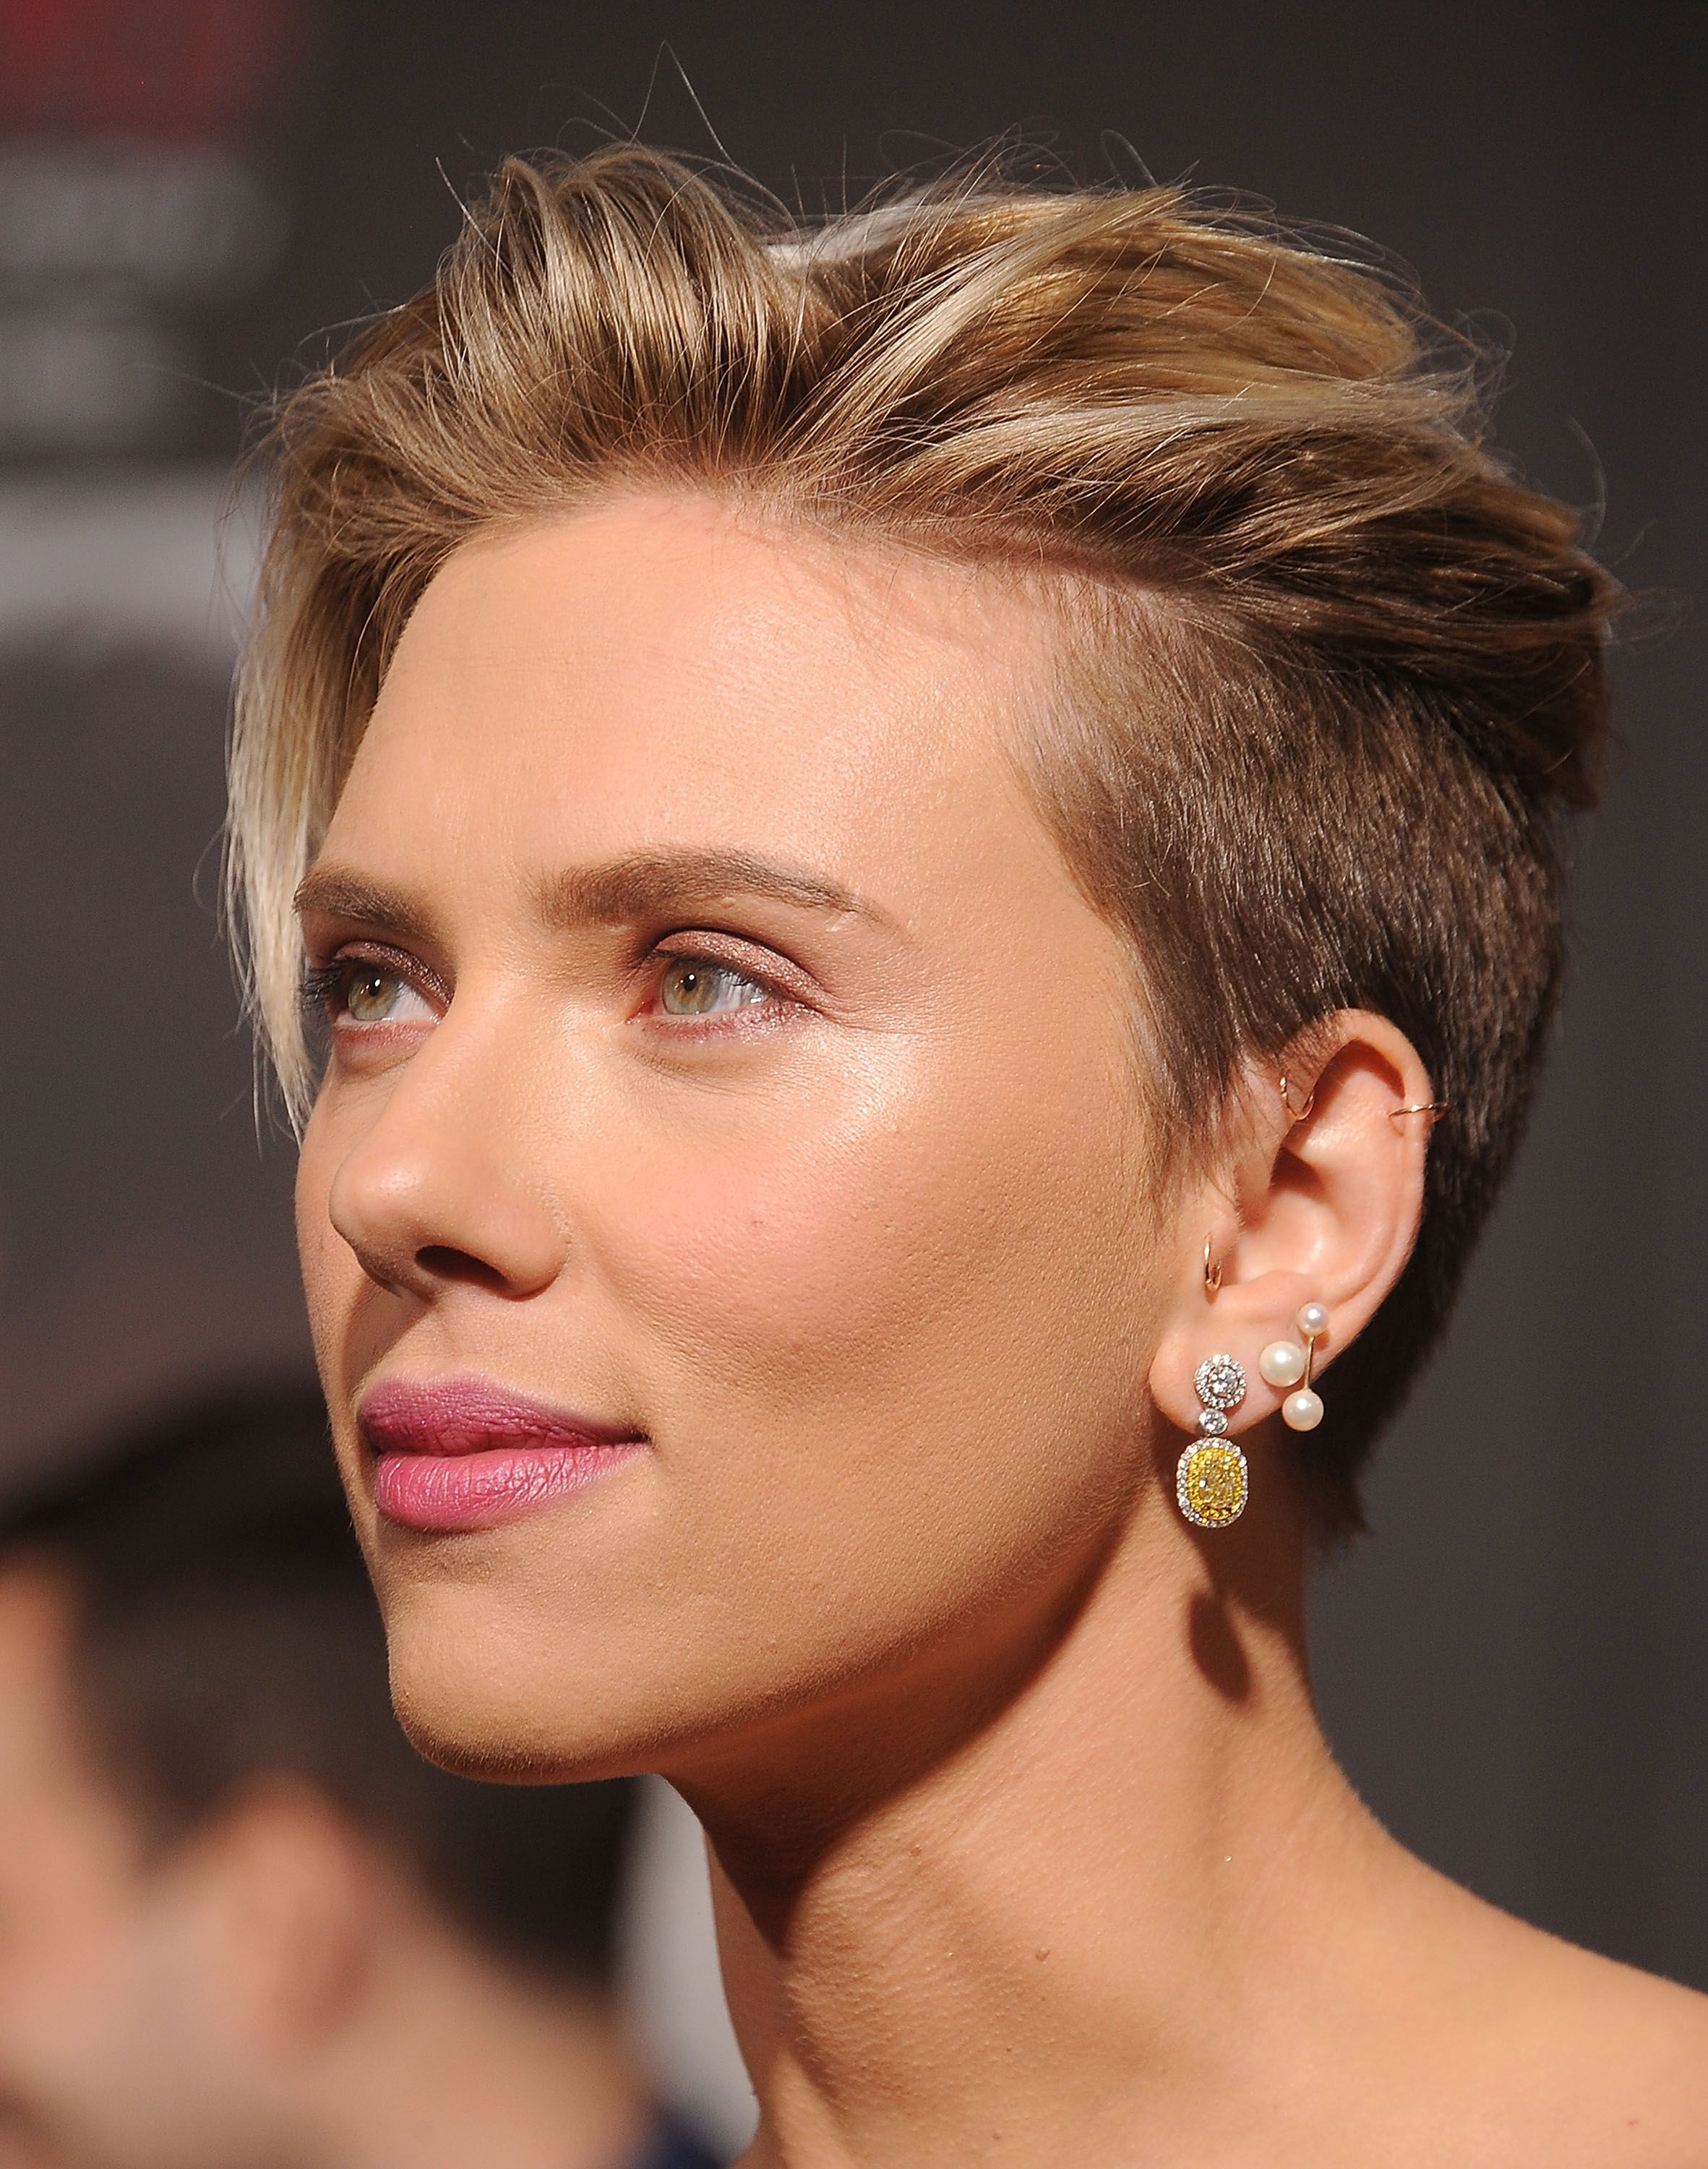 25 famous women whose hair should really get more attention | sexy